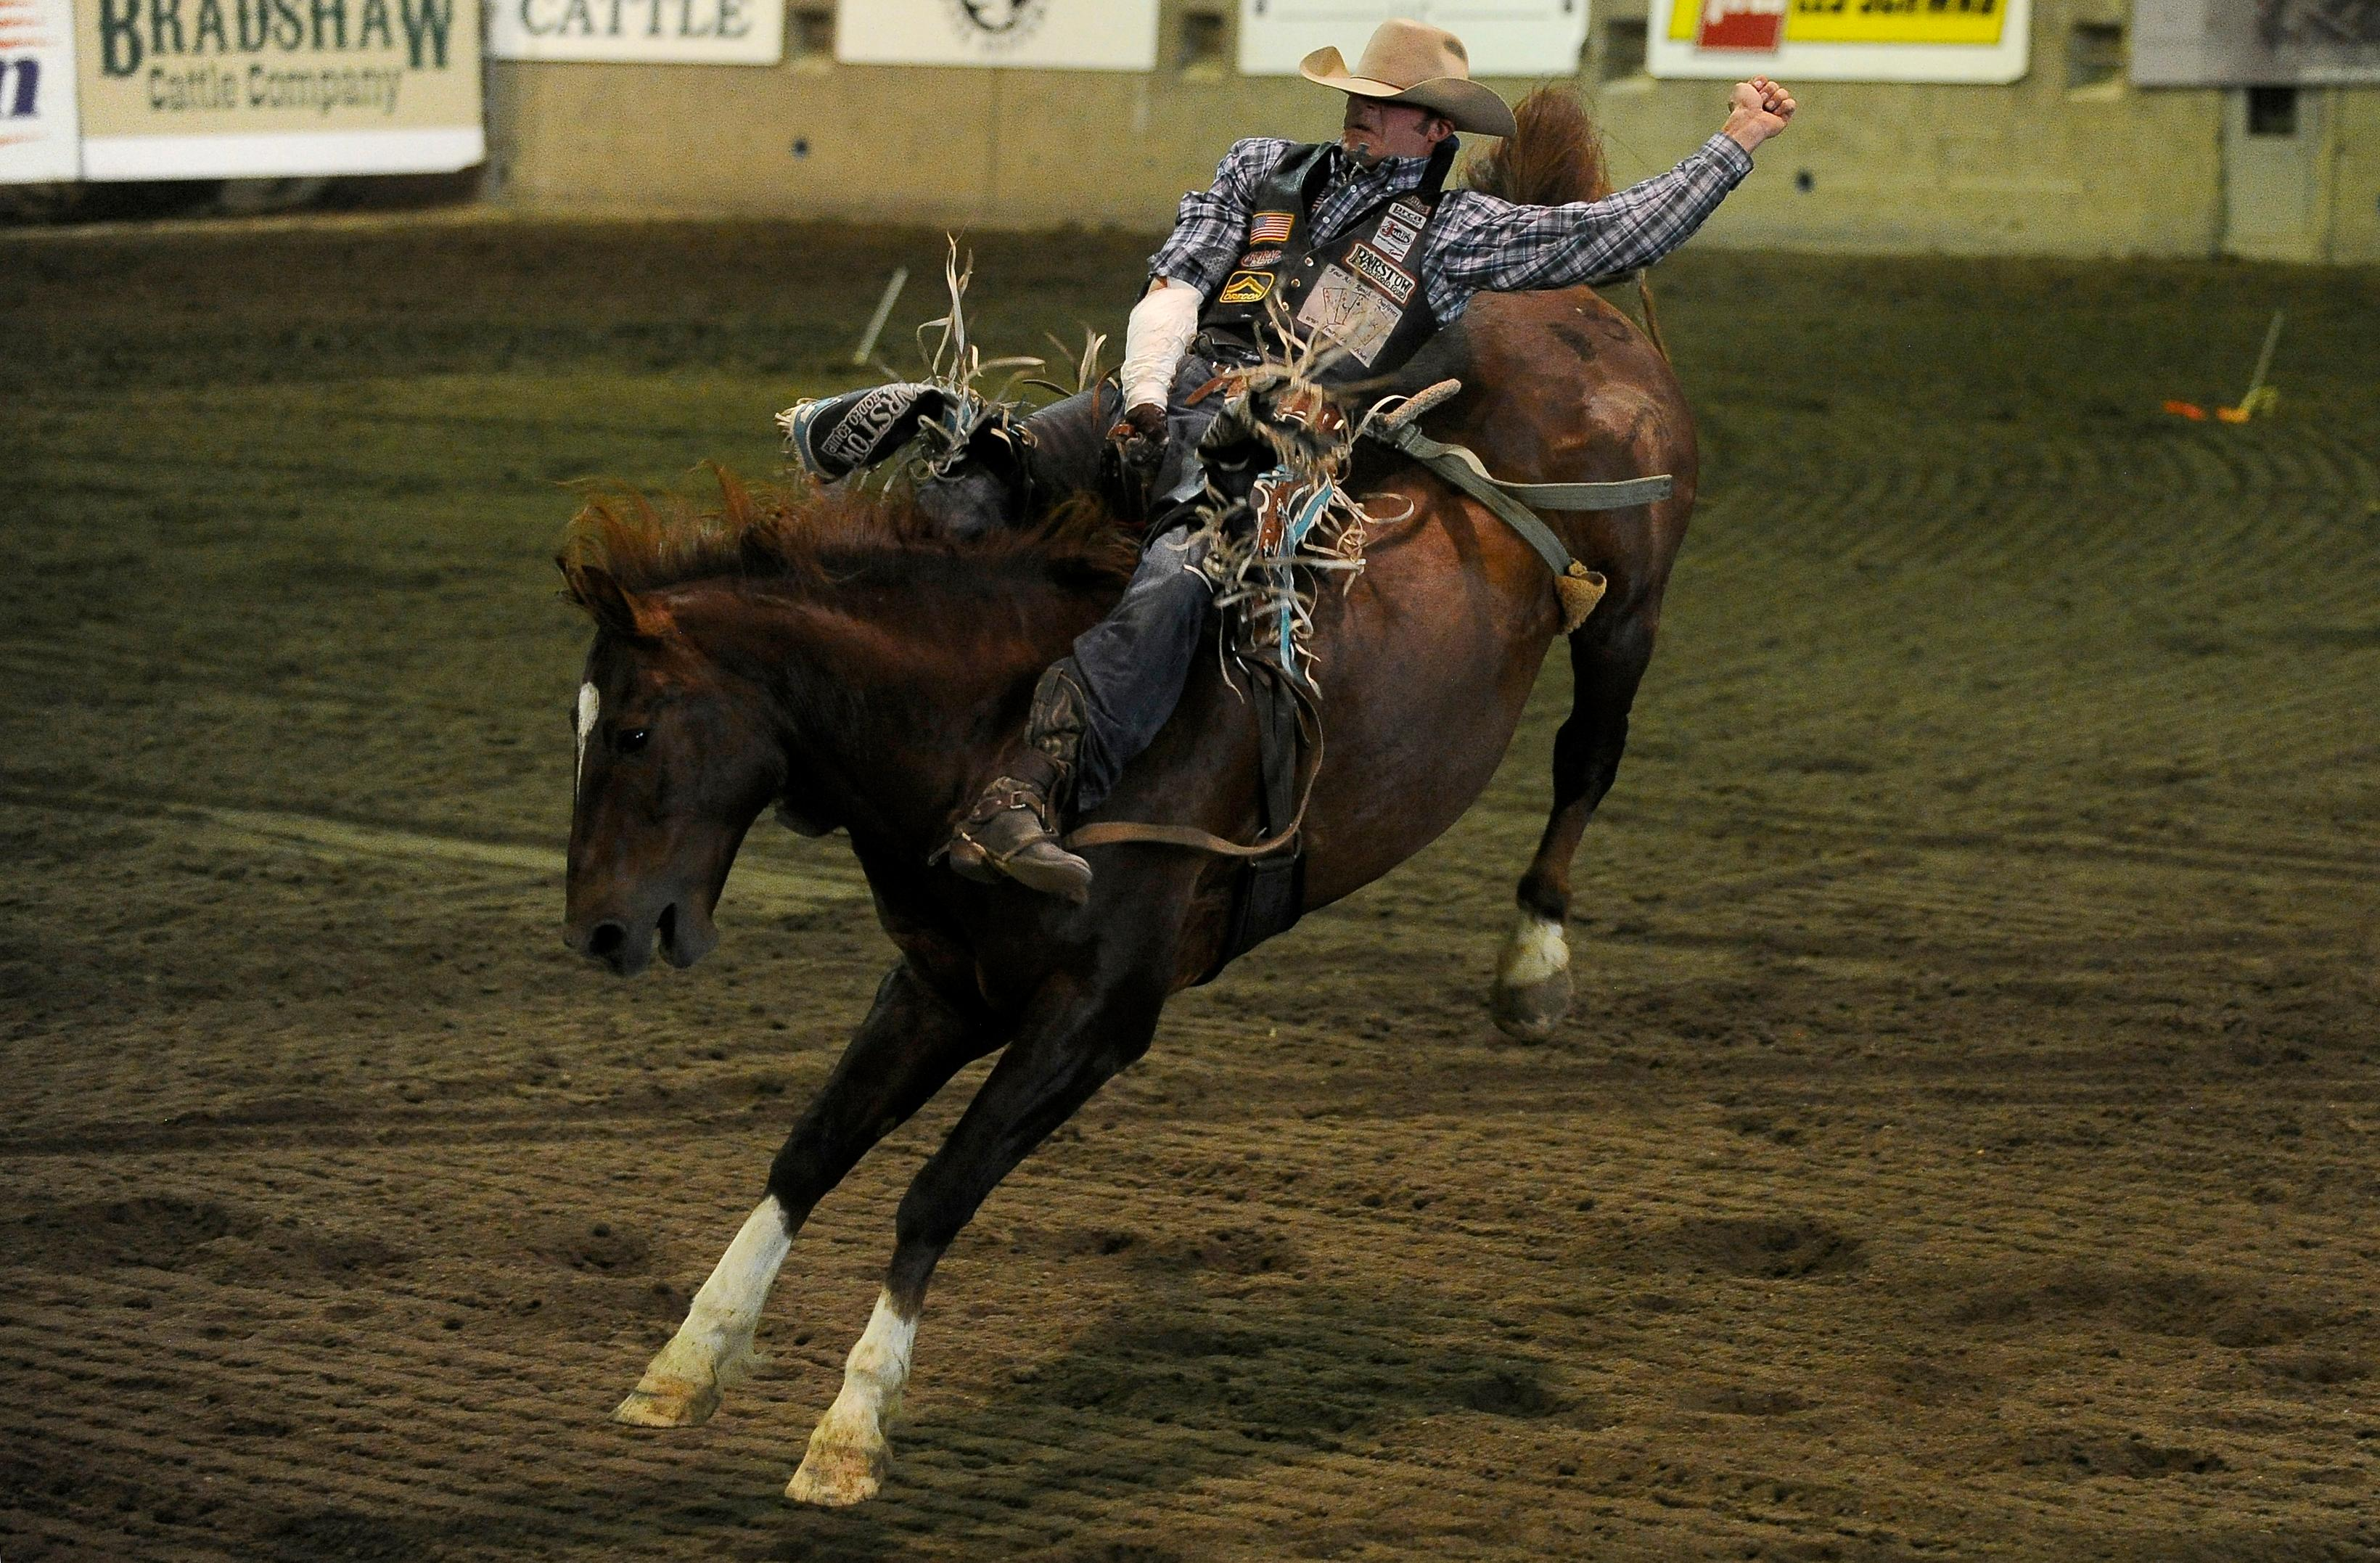 Andy Atkinson / Mail TribuneAustin Foss from Terrebonne takes his turn competing in bareback riding at the Jackson County Expo Thursday evening during the Wild Pro Rodeo.